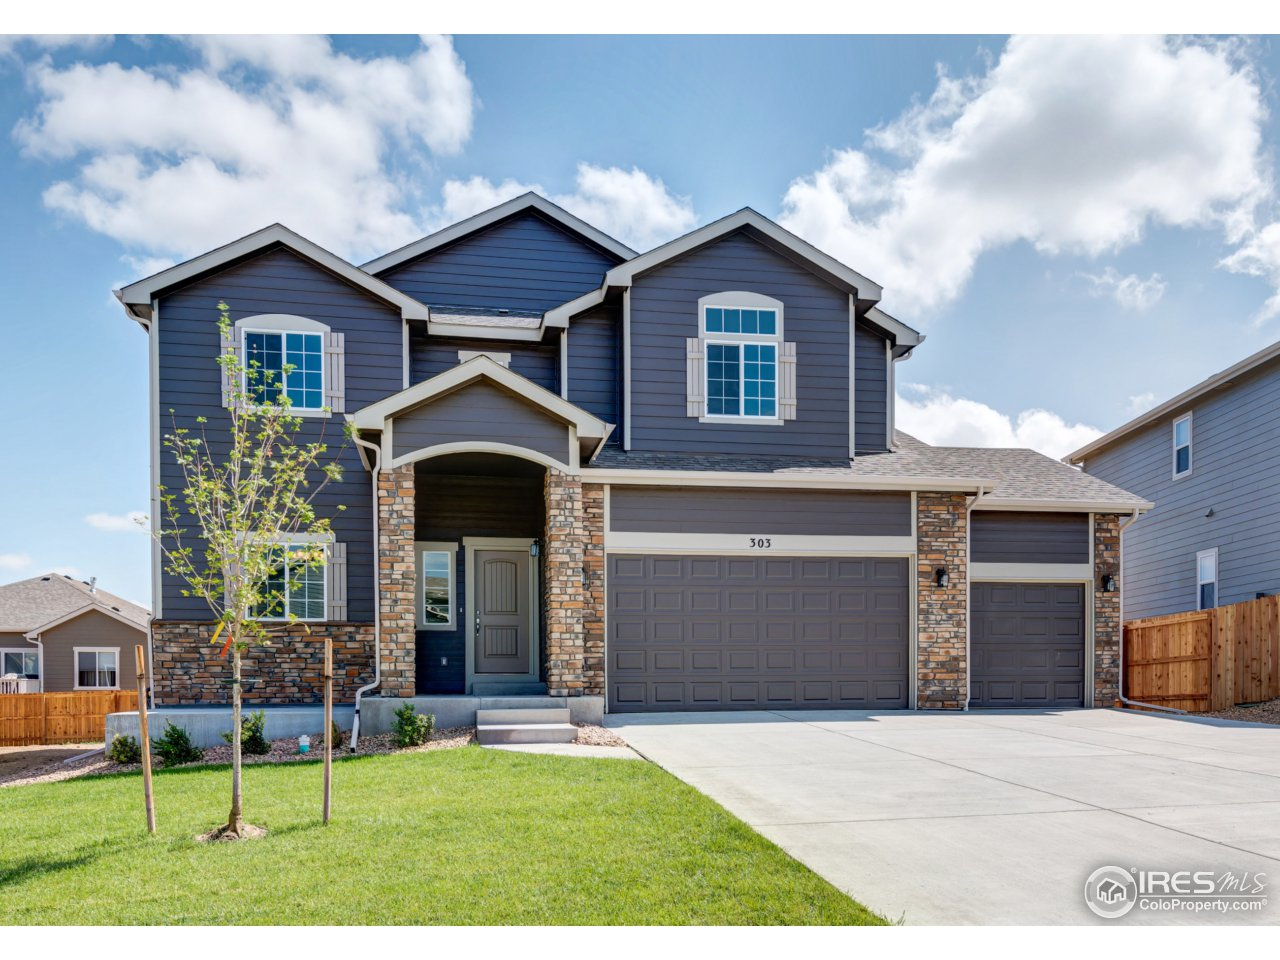 4367 Chicory Ct, Johnstown, CO 80534